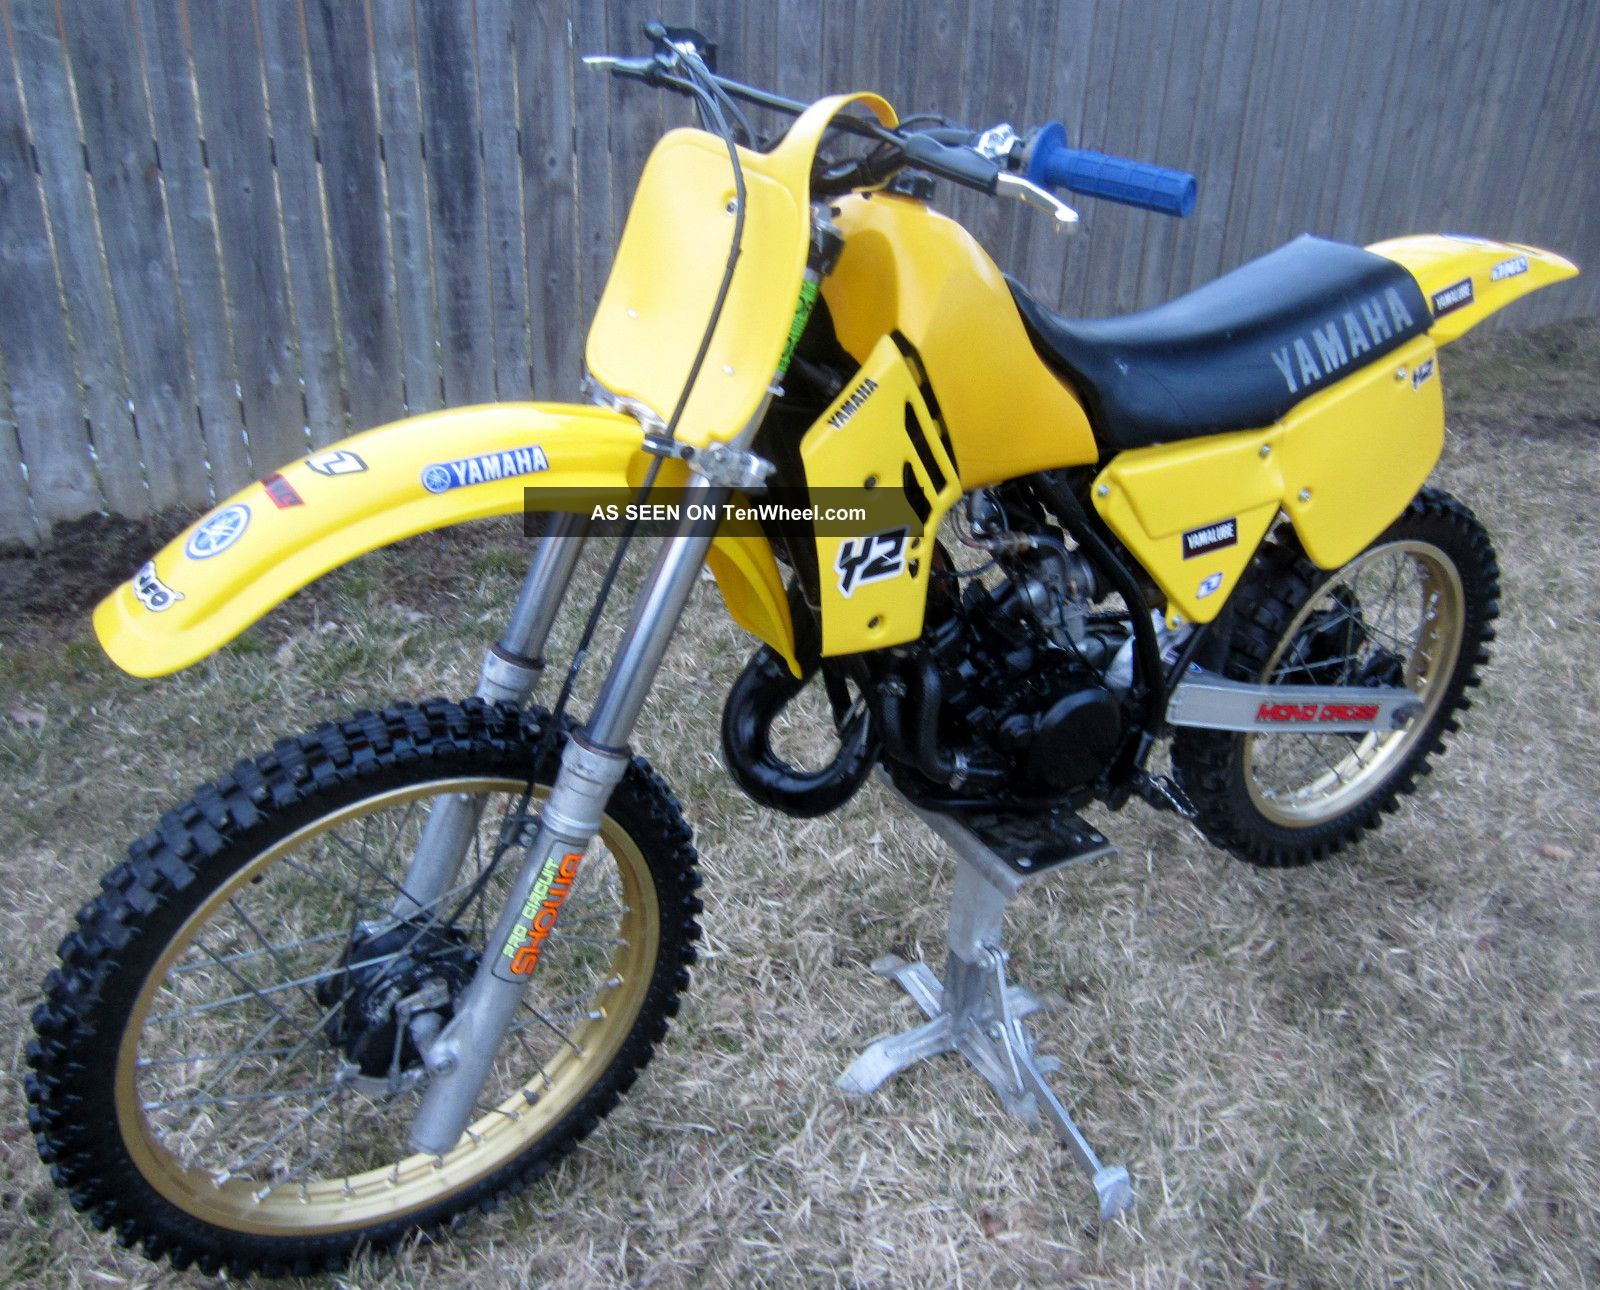 1984 yamaha yz125 yz 125 ahrma vintage motocross dirt bike. Black Bedroom Furniture Sets. Home Design Ideas